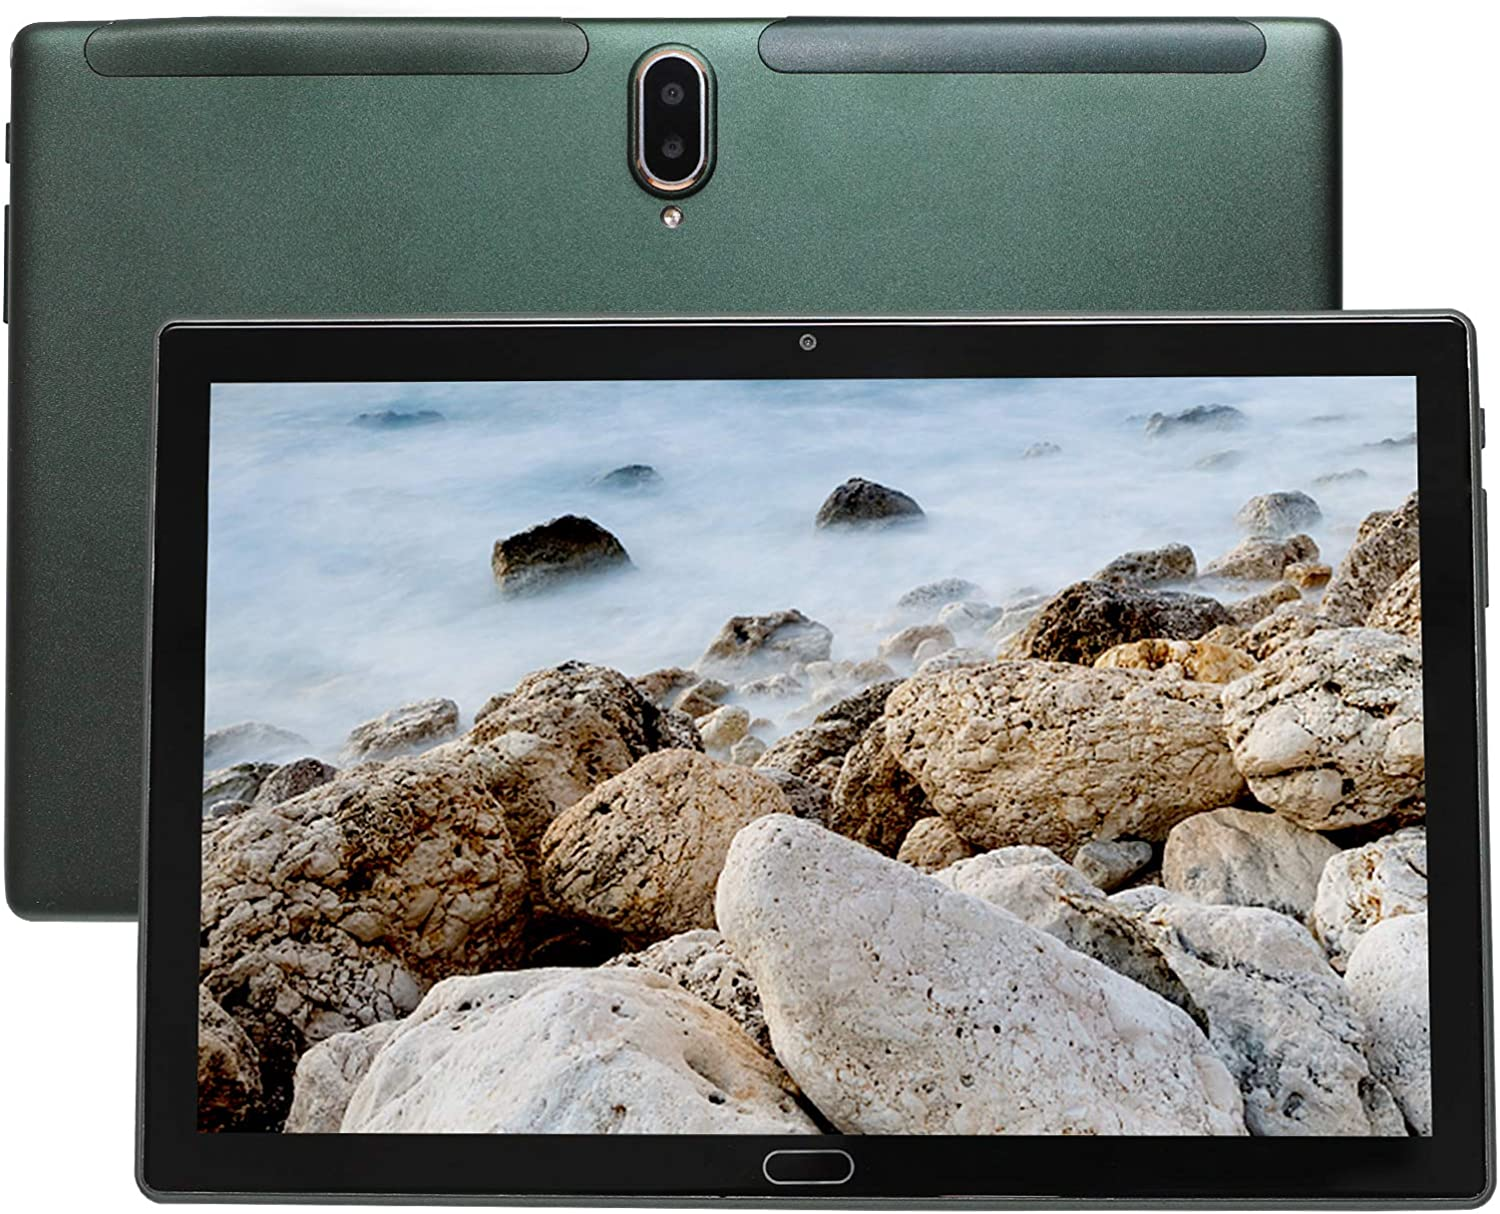 Tablet 10 inch, 4G LTE UCSUOKU Android 10 Tablet PC, 4GB RAM 64GB ROM Deca Core Processor, HD Touchscreen, 5MP + 8MP Camera GPS WiFi Bluetooth 5.0 Type-c TF Card All Metal (Green)